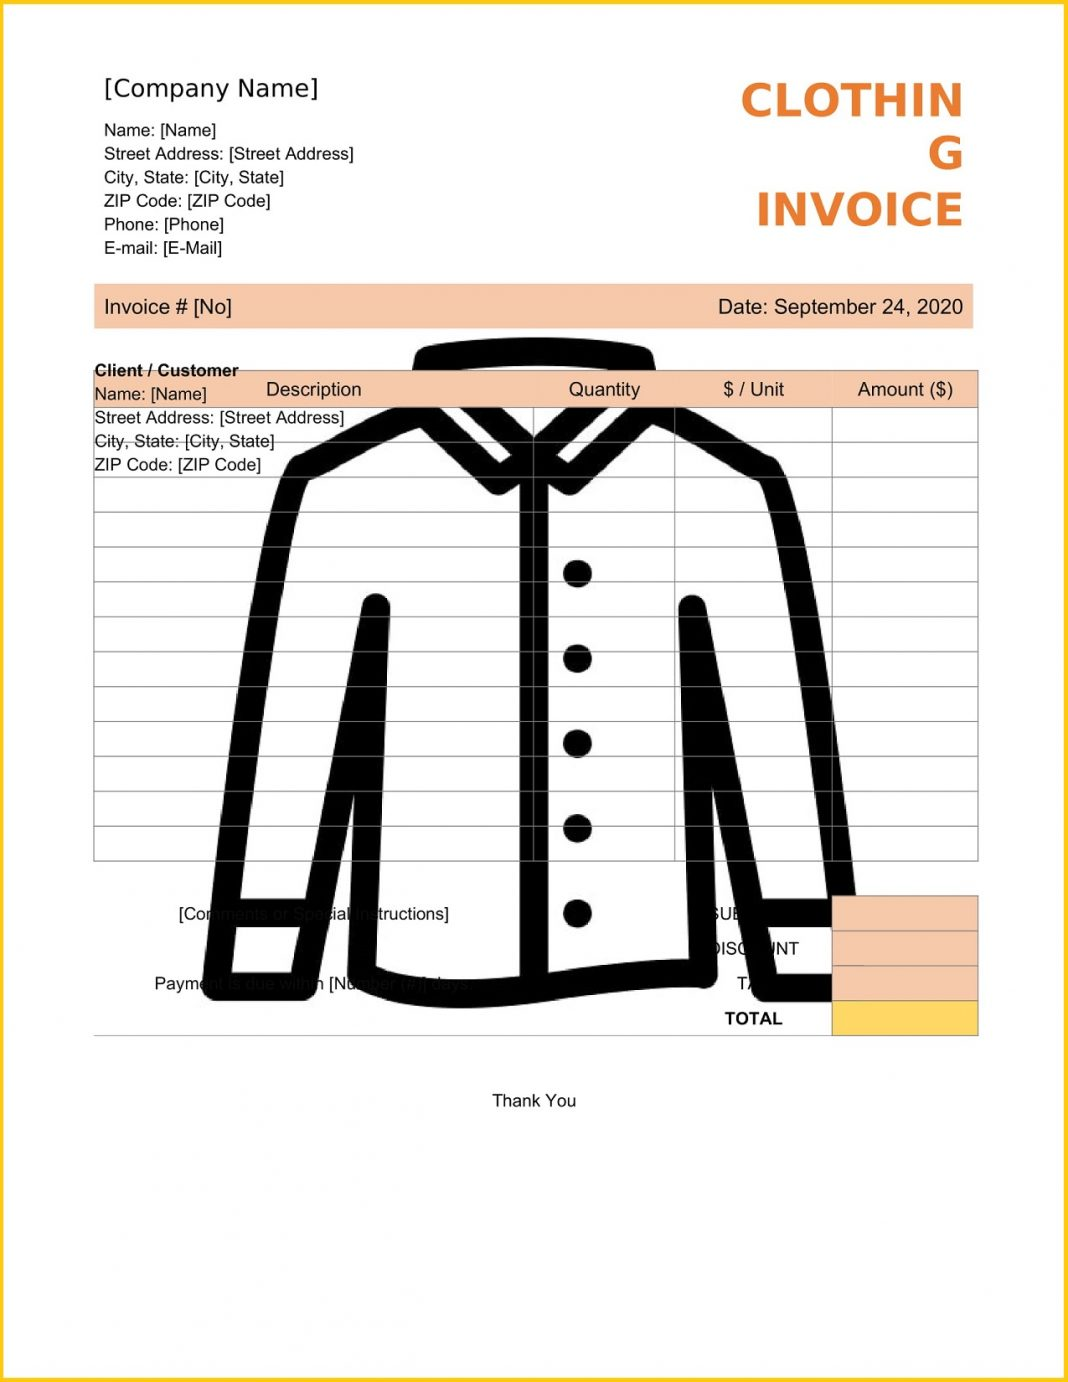 Clothing Invoice Word Template Tax Sample Cloth Shop Bill Format In Invoicemaker  (Garments) Large